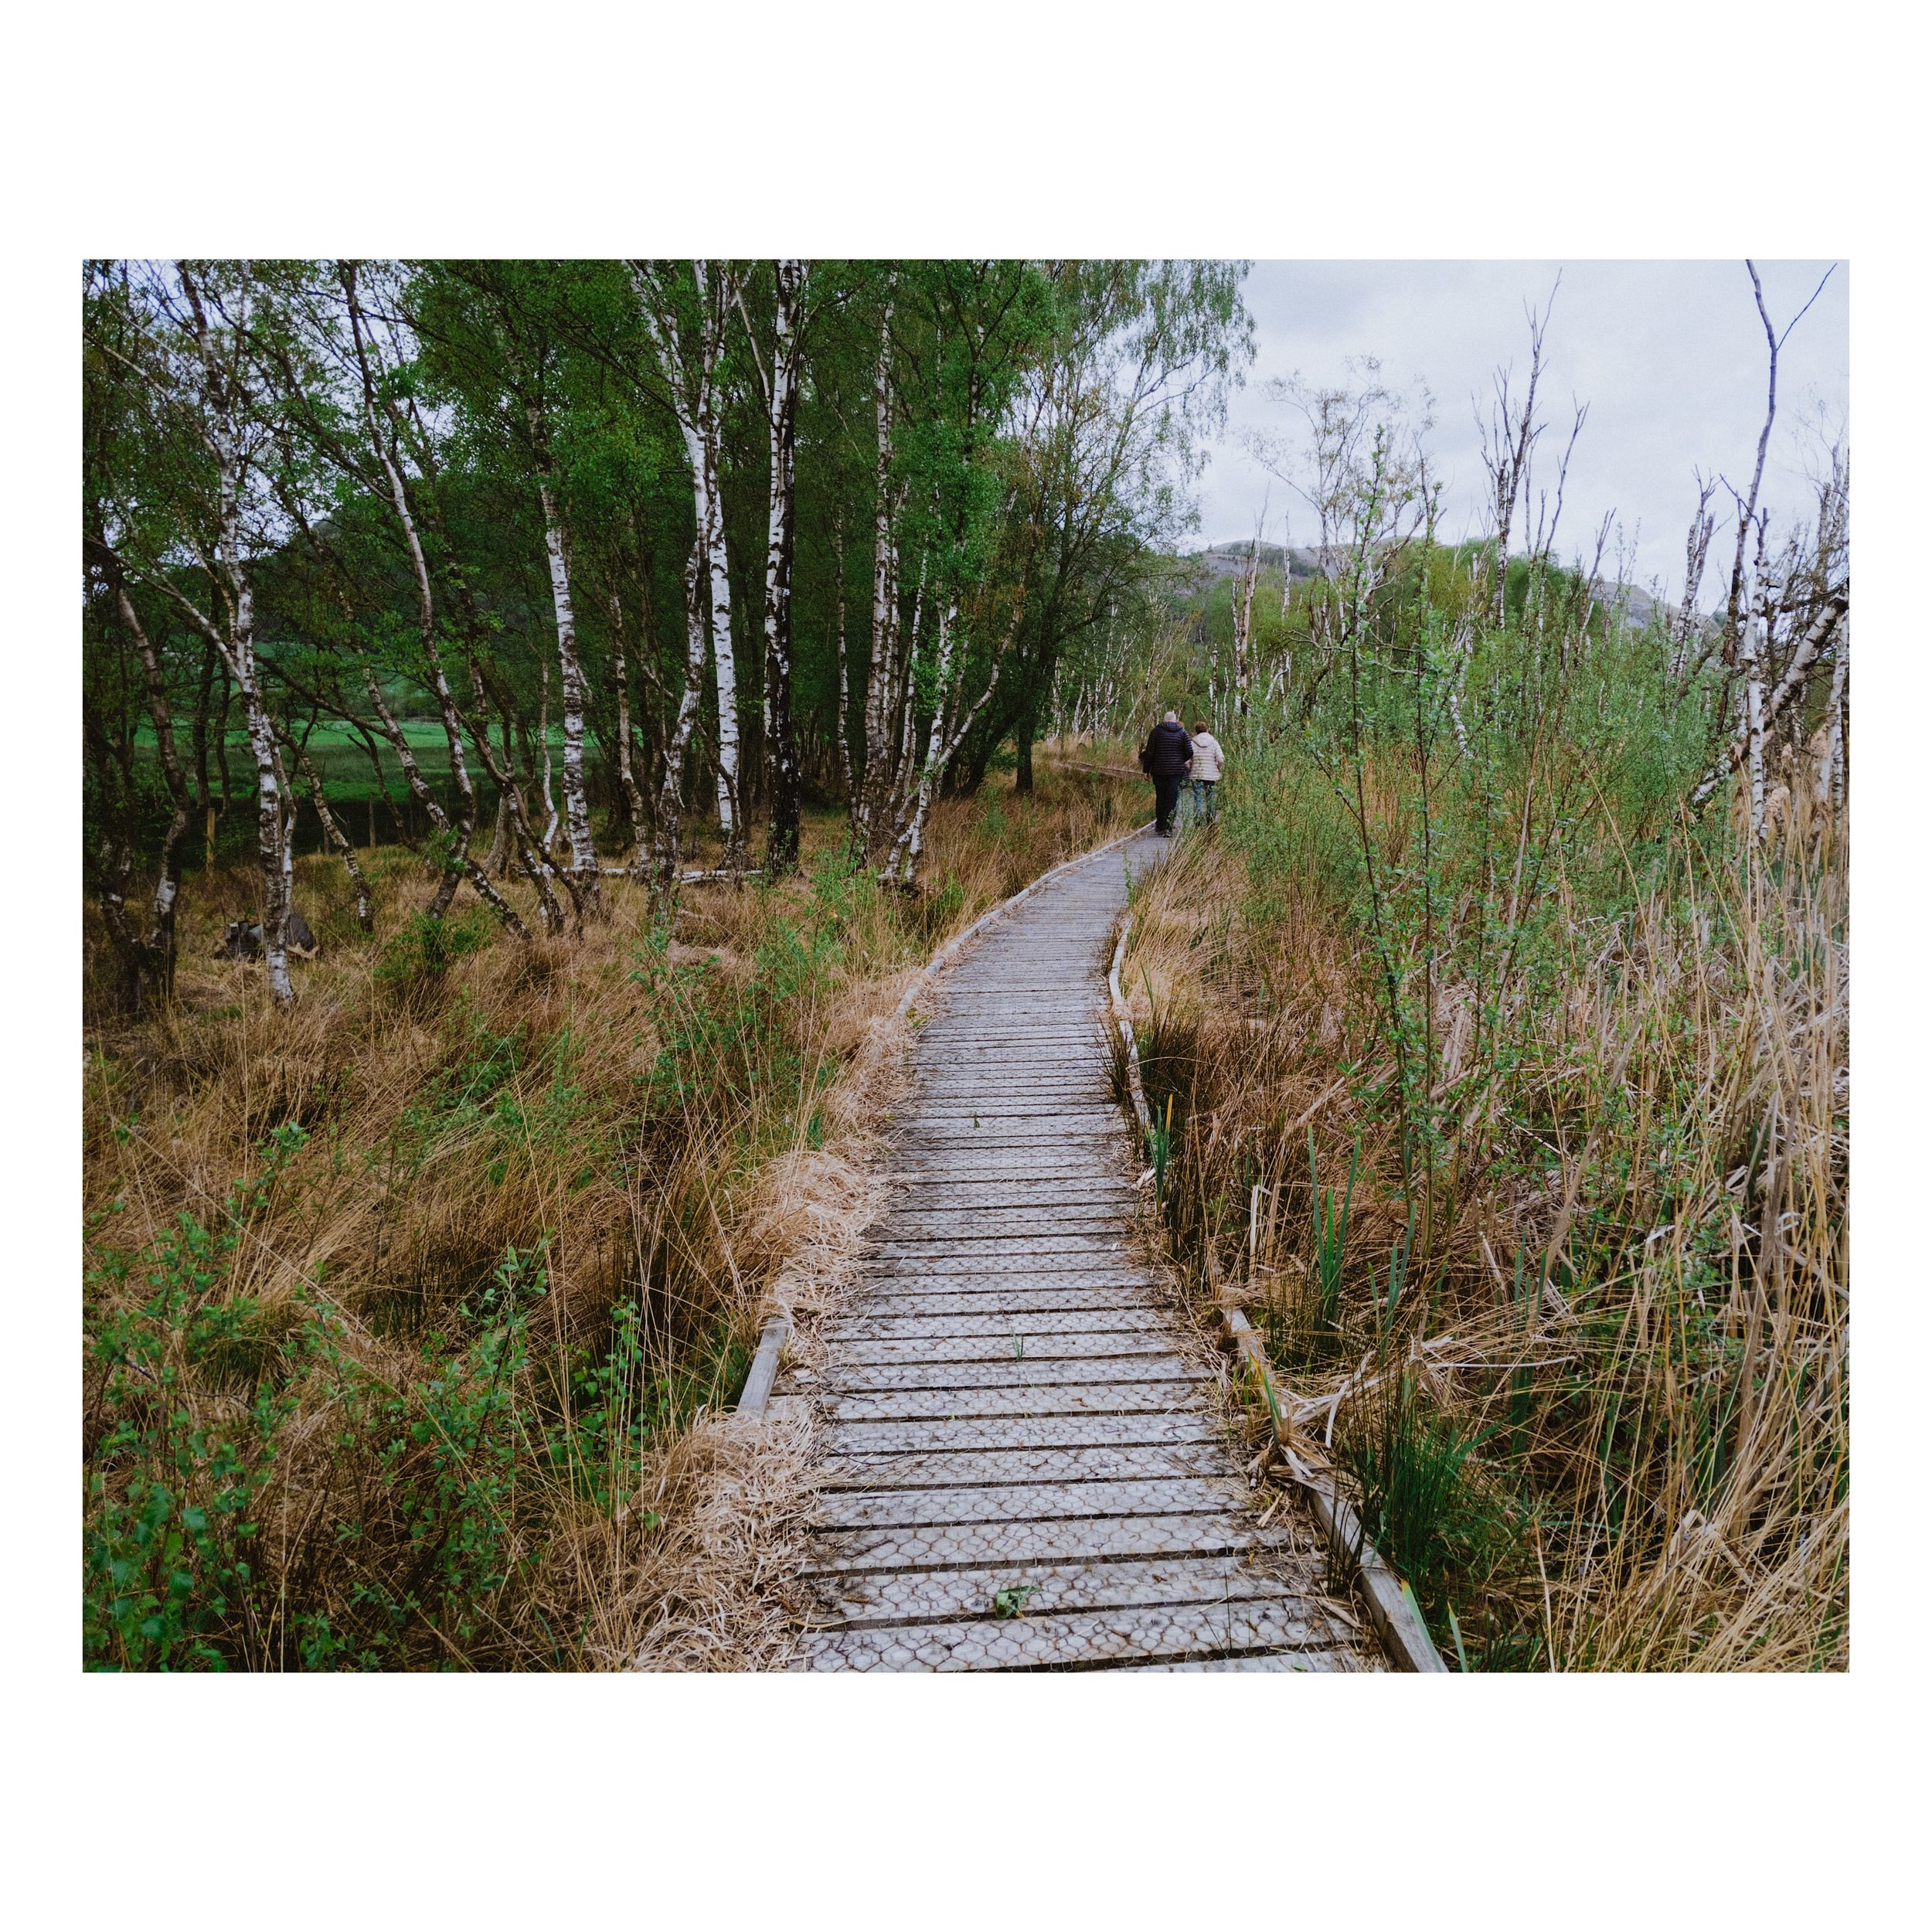 Boardwalks topped with chicken wire feature heavily in Foulshaw Moss, to provide a way through the Nature Reserve without disturbing the habitats of all the flora and fauna.